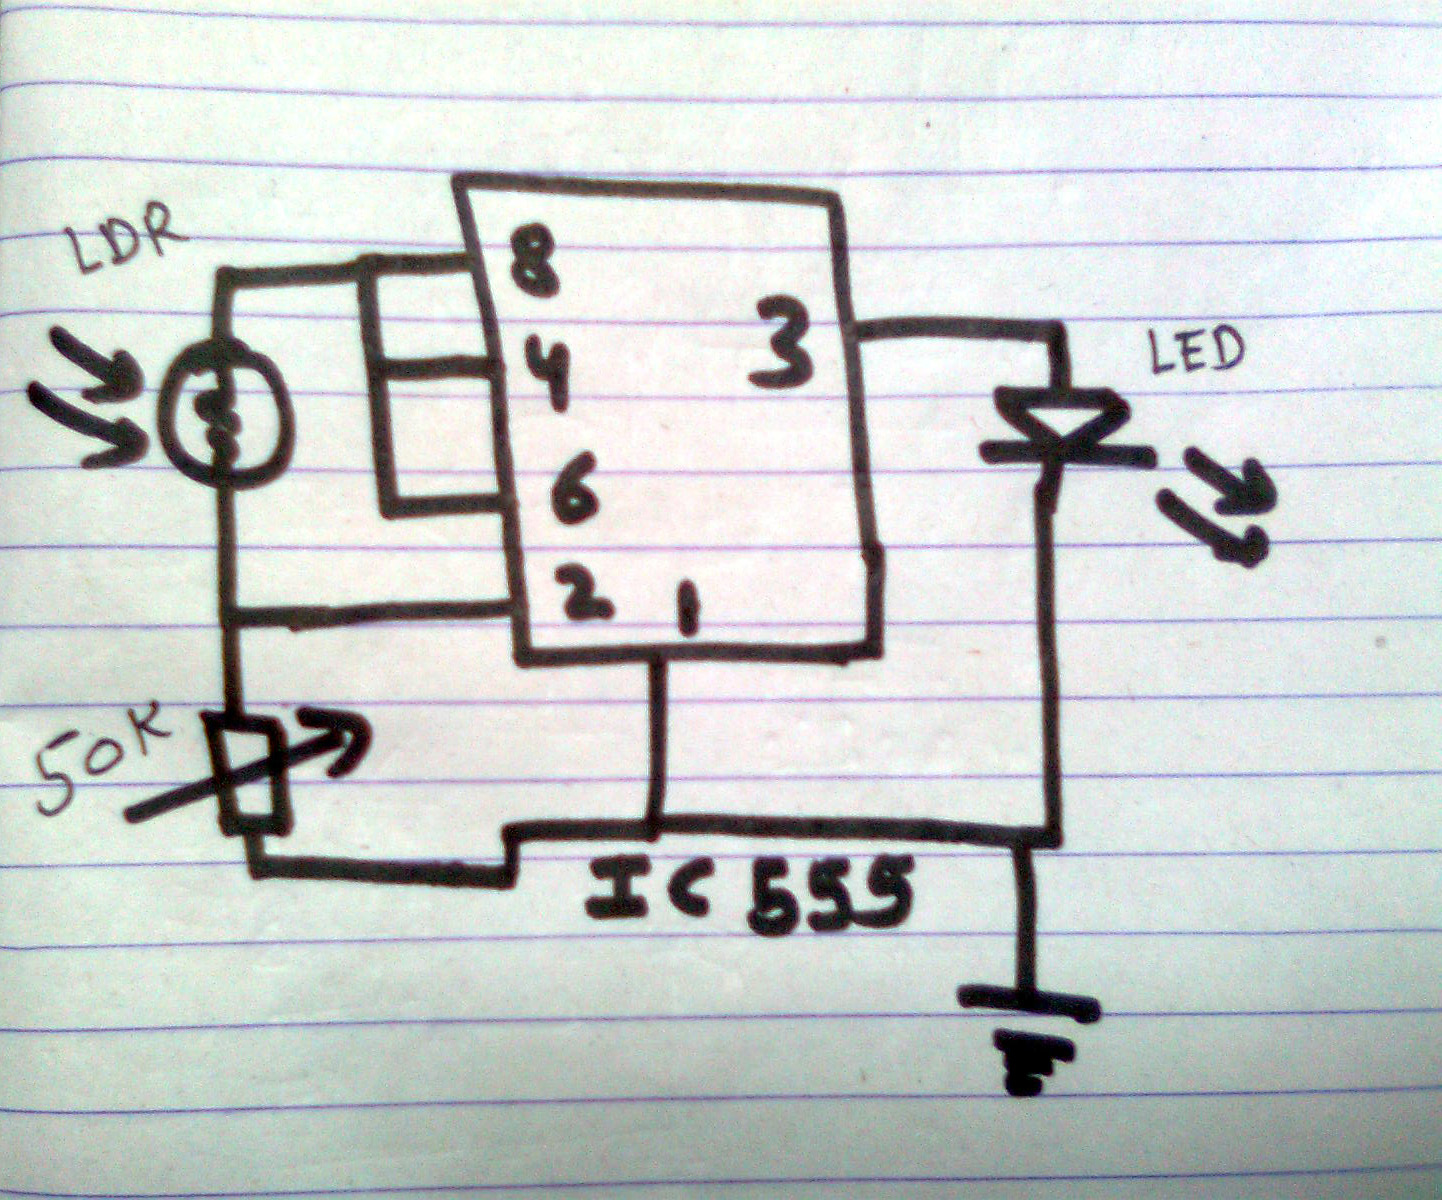 Electronics Project How To Make An Automatic Street Light Using 555 Simple Circuit Diagrams Of Projects Made By Marker